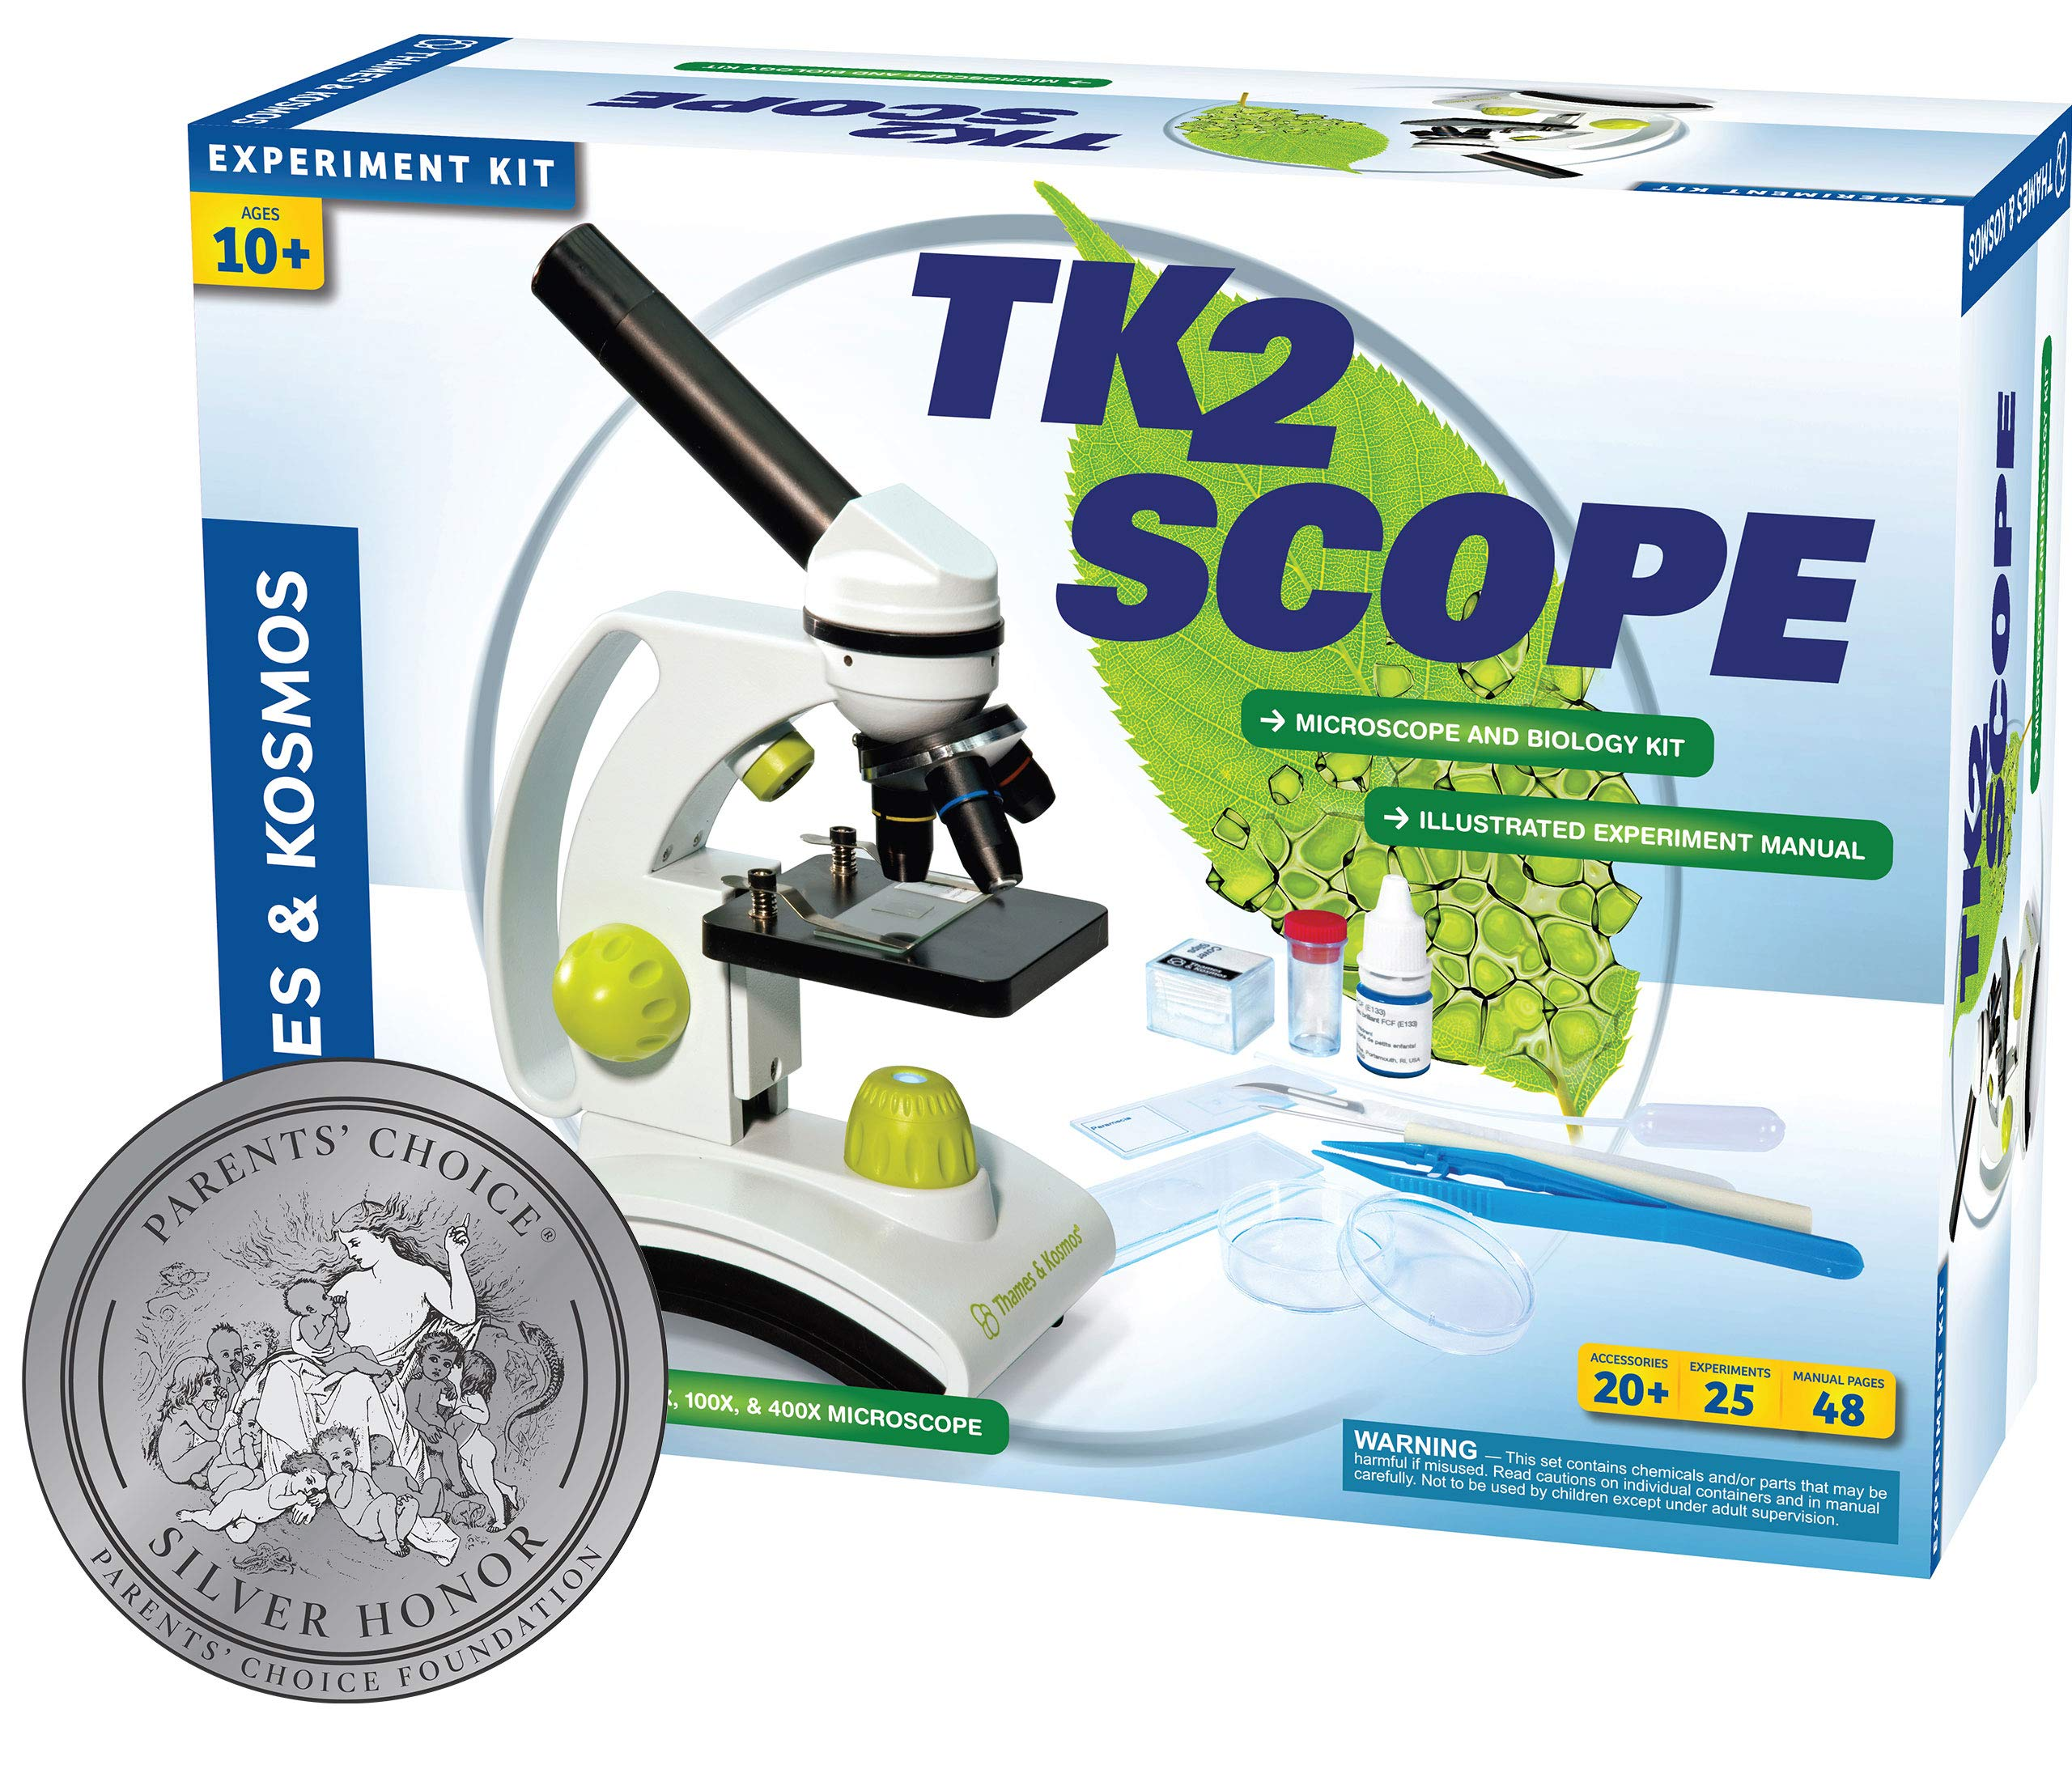 Thames & Kosmos TK2 Scope Biology and Durable Metal Microscope Set with Glass Optics, 25 Experiments and 48 Page Full Color Lab Manual, Professional Student Quality by Thames & Kosmos